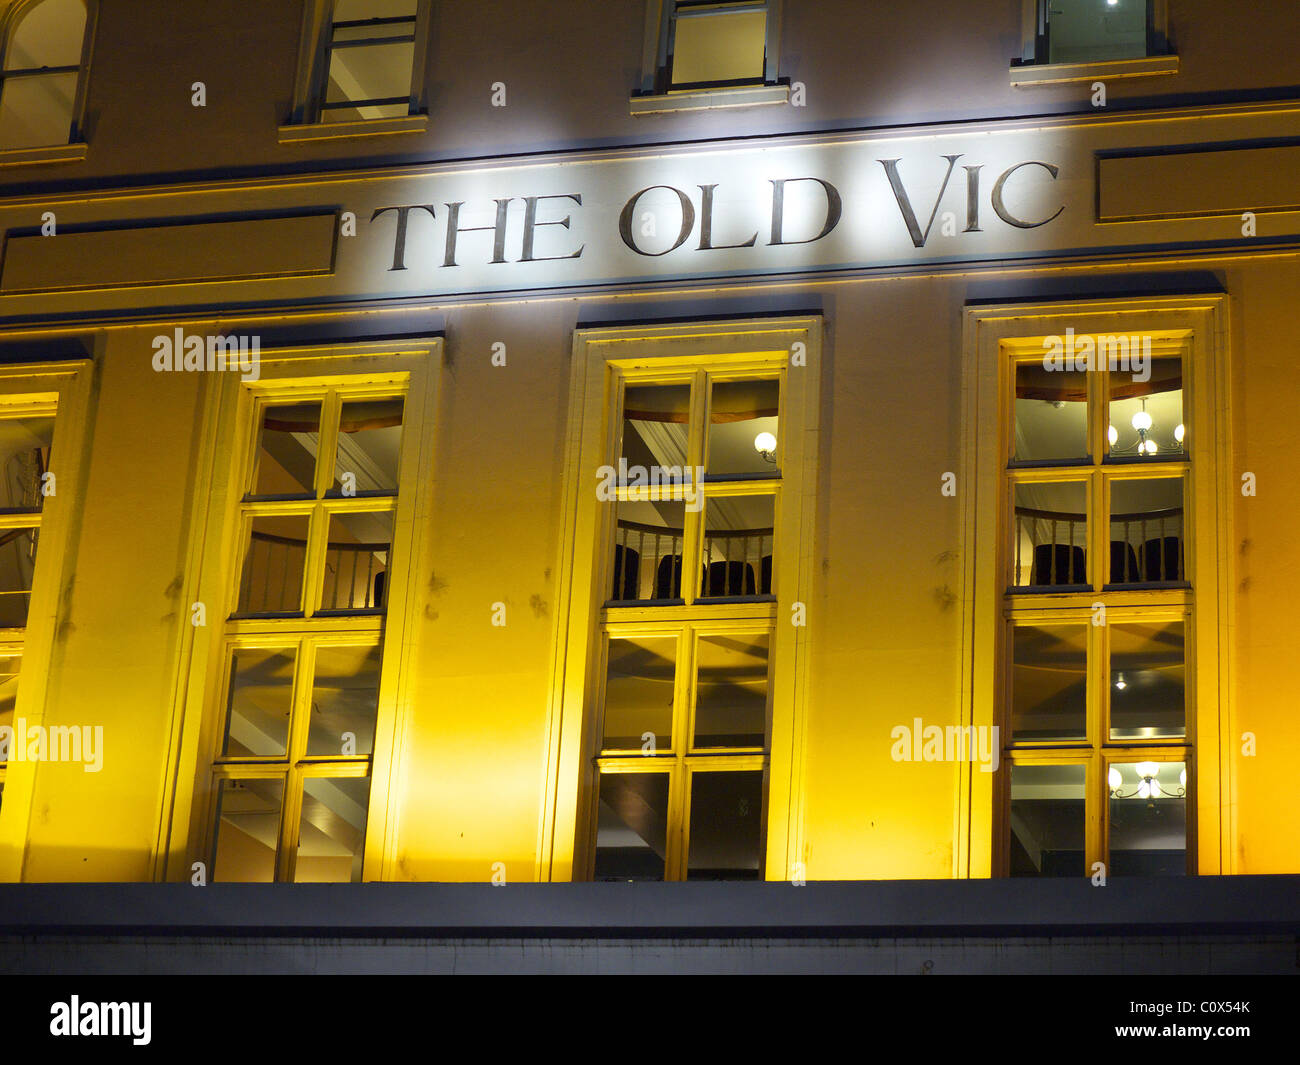 Close-up front view of The Old Vic theatre floodlit at night in London - Stock Image